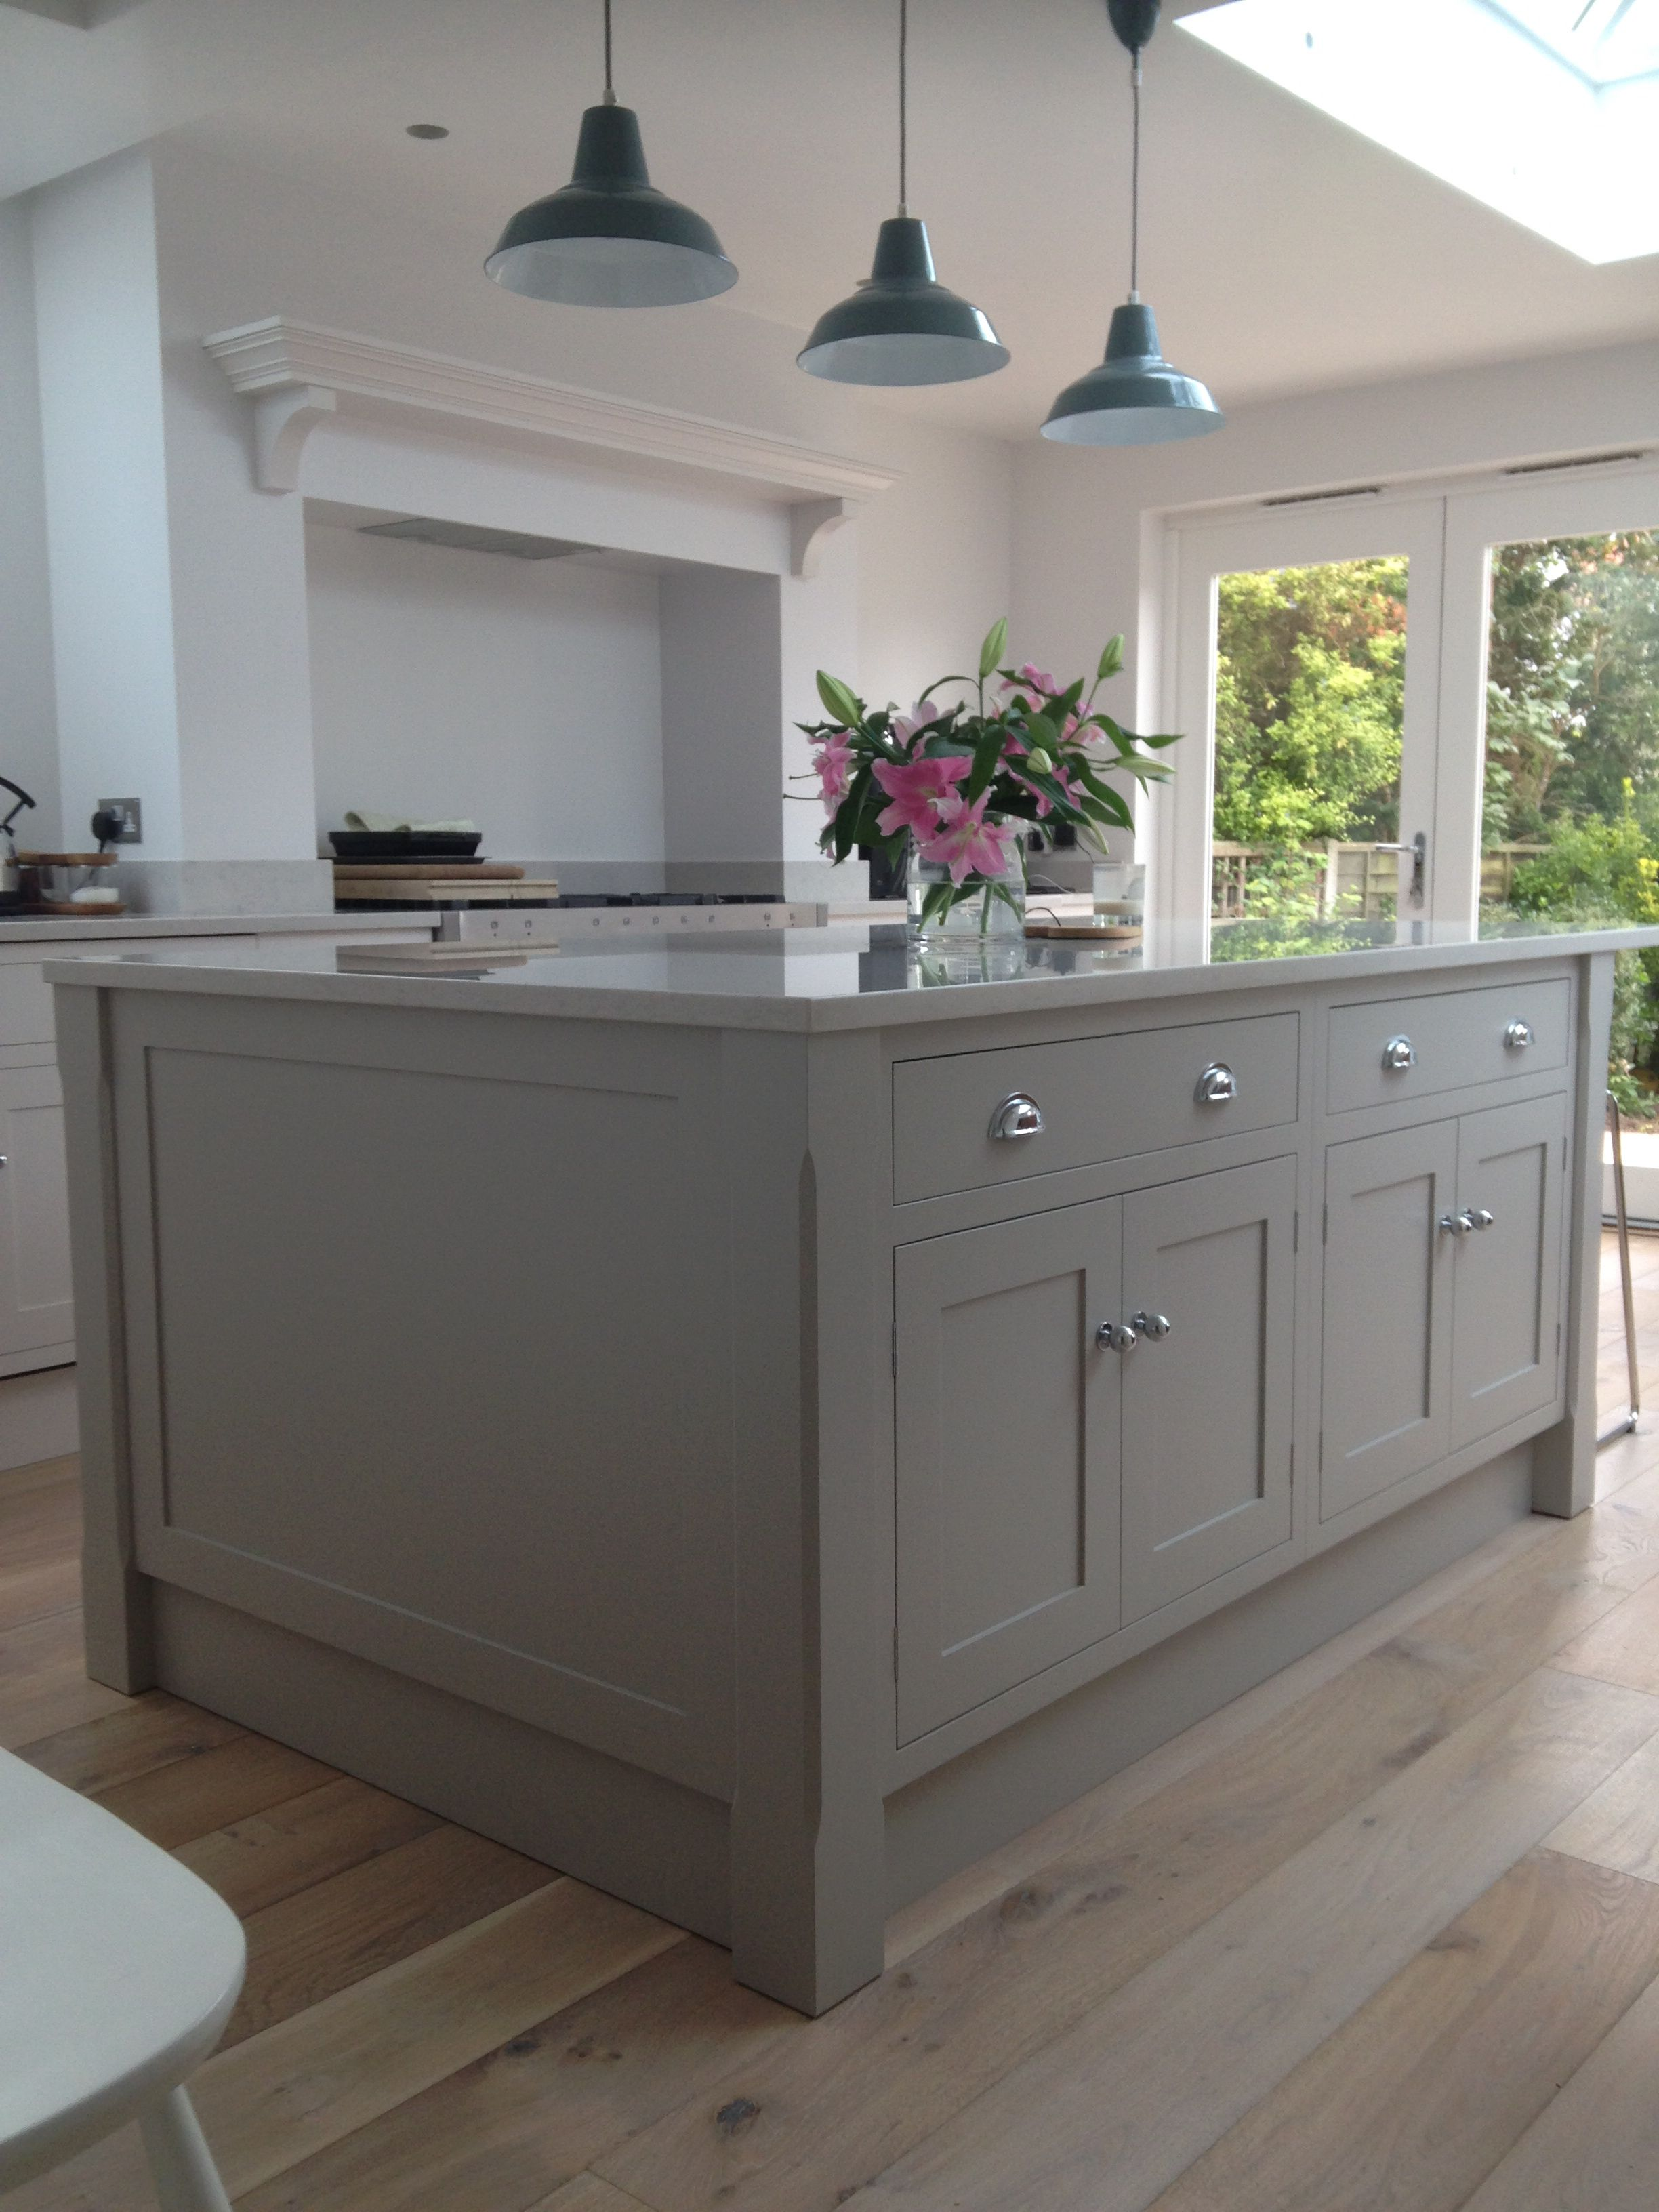 Grey Kitchen Cabinets For Sale Interior Design Pale Shaker With Silestone 39lagoon 39 Worktop Ld